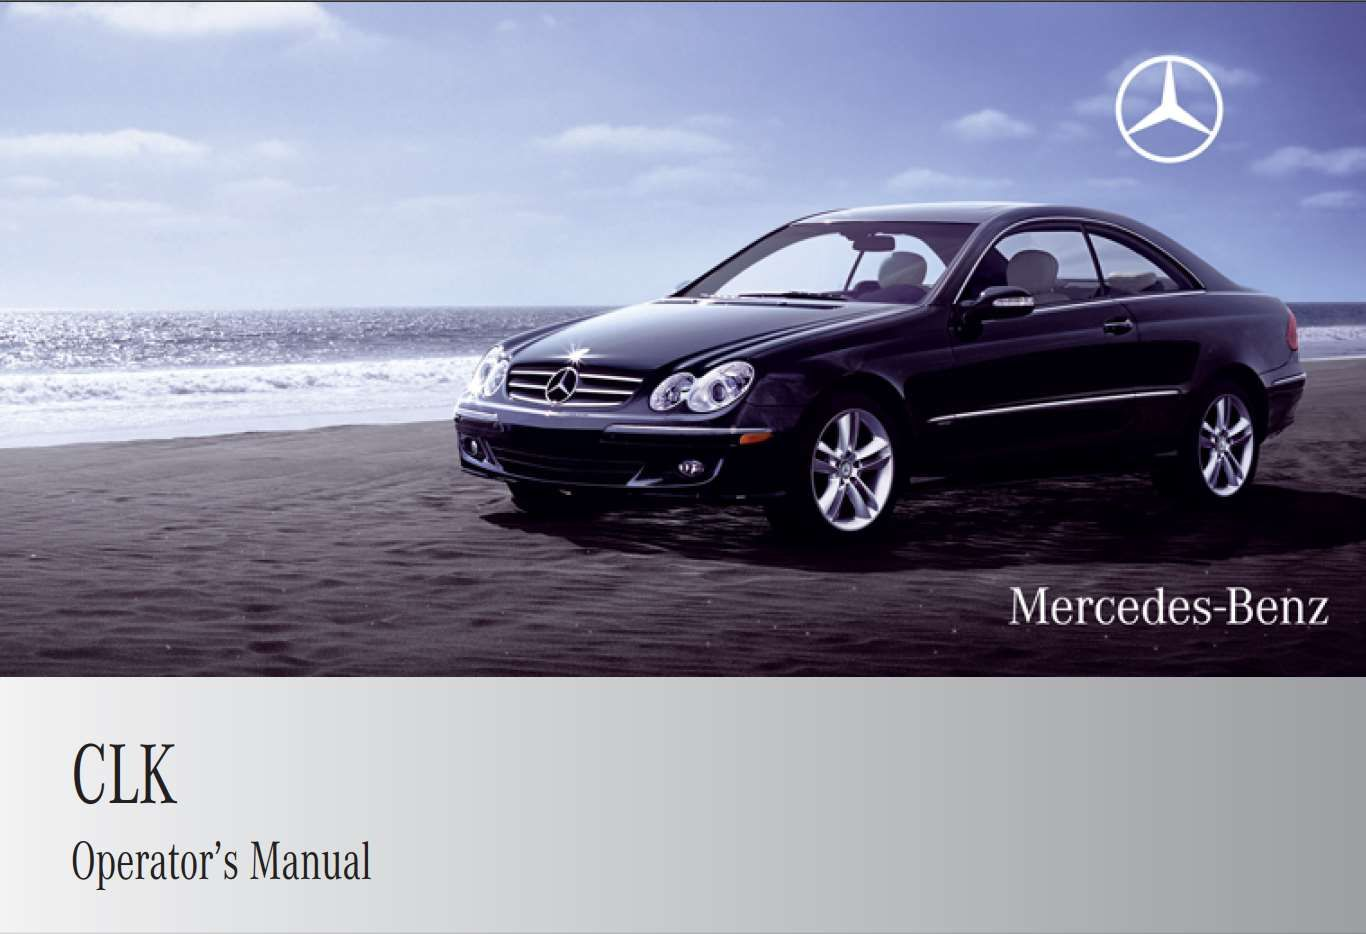 Mercedes Benz Clk Class Coupe 2009 Owner S Manual Has Been Published On Procarmanuals Com Https Procarmanuals Com Mercedes Benz C Mercedes Benz Benz Mercedes